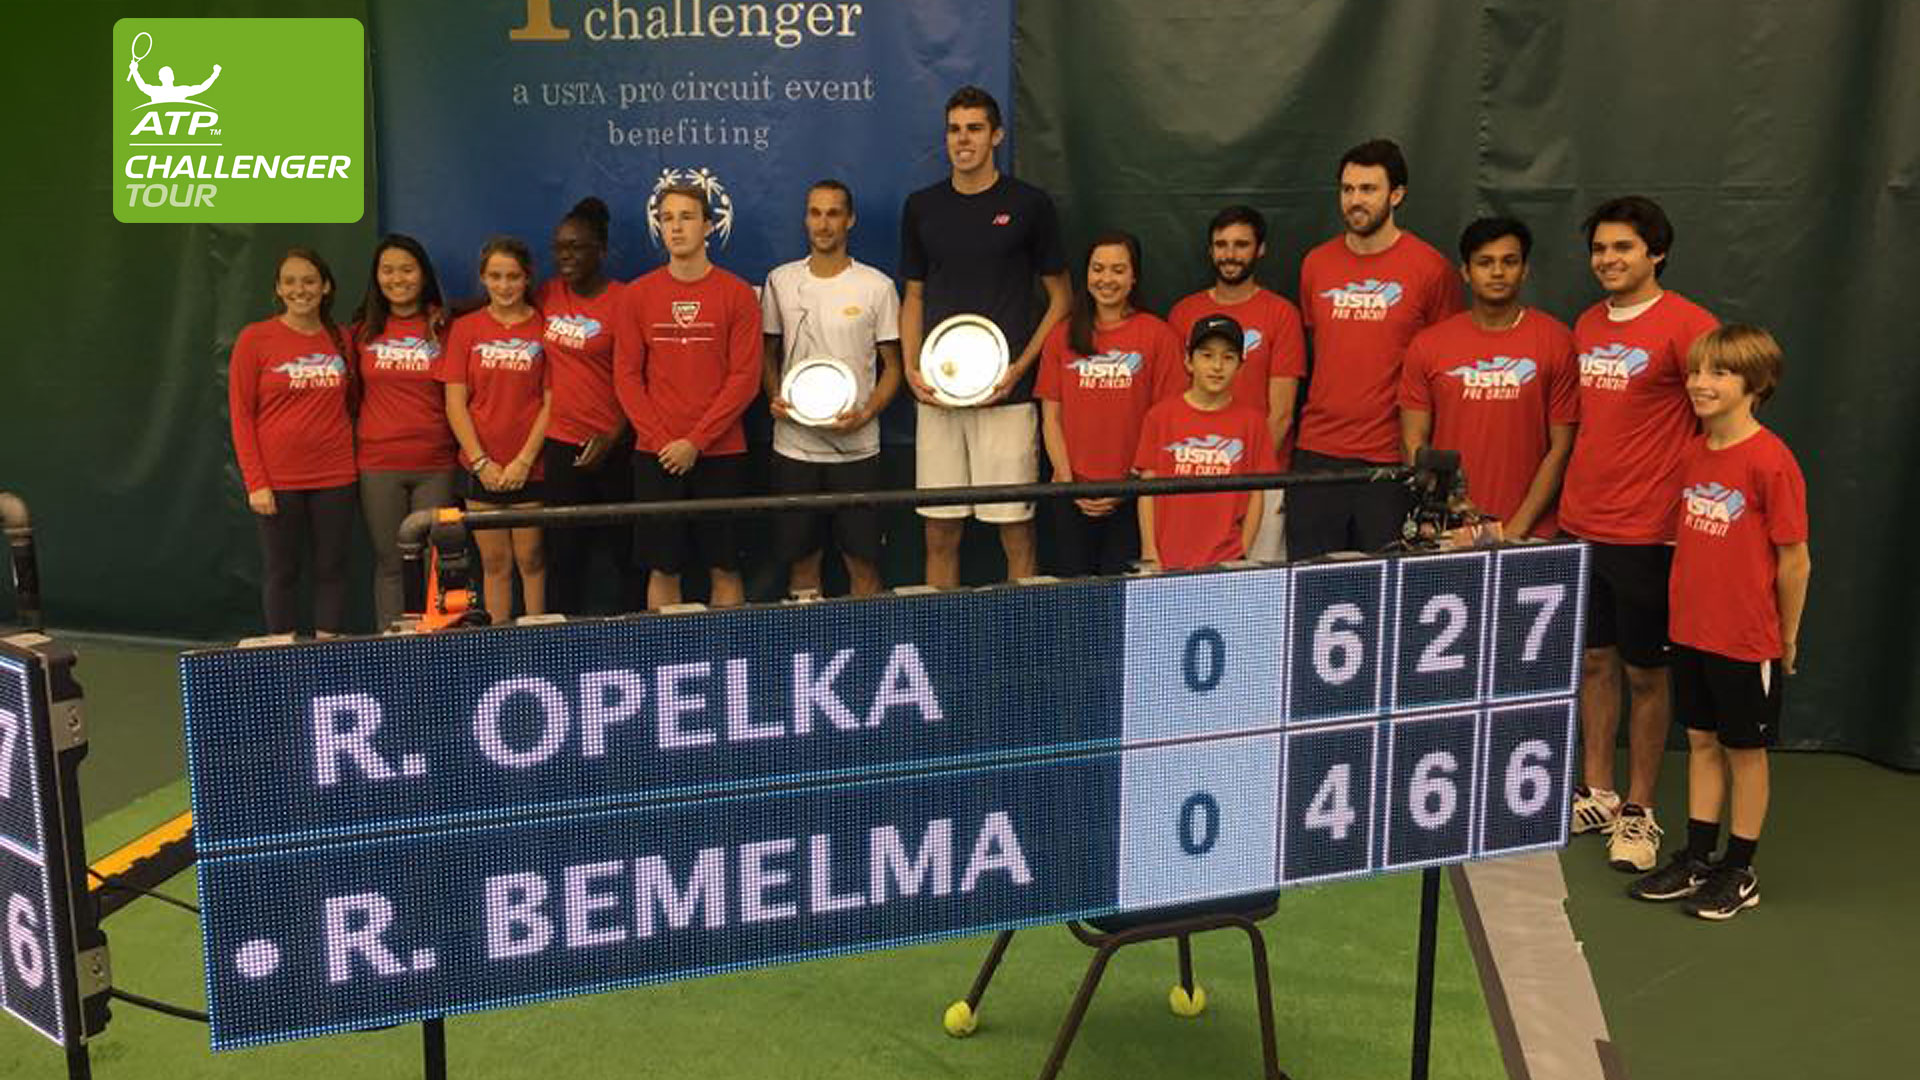 Reilly Opelka is all smiles after winning his first Challenger title in Charlottesville.